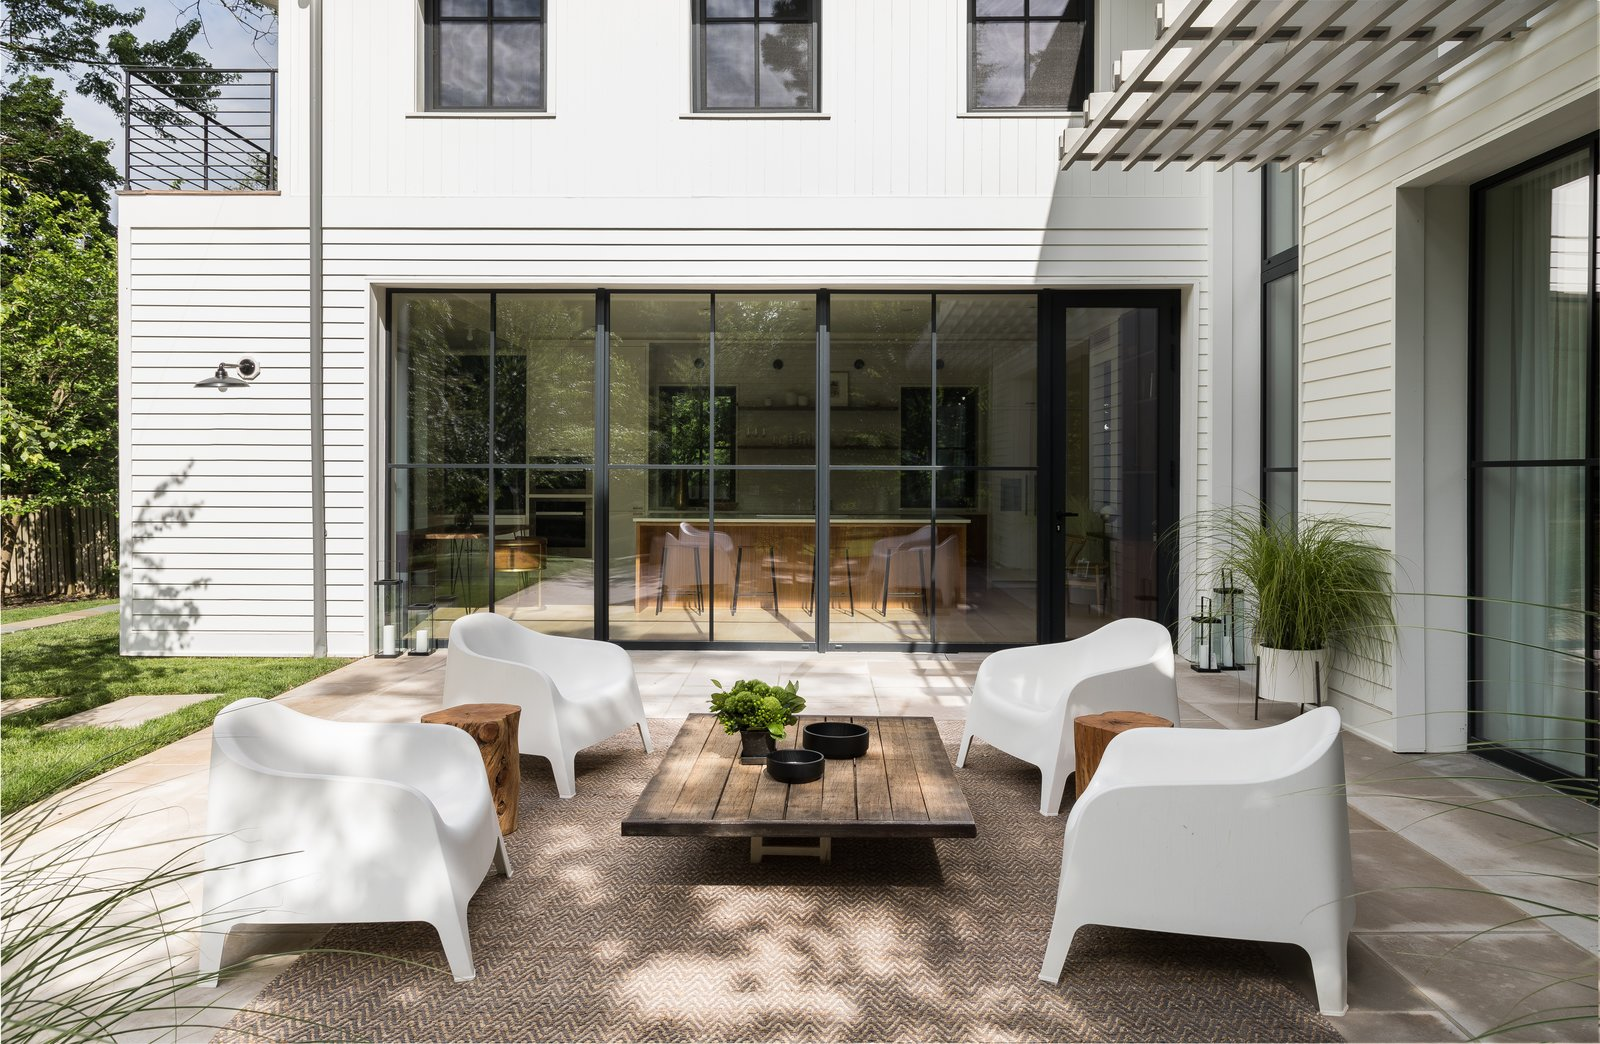 Outdoor, Large Patio, Porch, Deck, Back Yard, Stone Patio, Porch, Deck, Planters Patio, Porch, Deck, Hanging Lighting, Trees, and Grass A limestone terrace beckons off the main living areas. The white outdoor chairs are from IKEA.  Photo 13 of 16 in A New Jersey Neighborhood Gets a Gorgeous Passive House